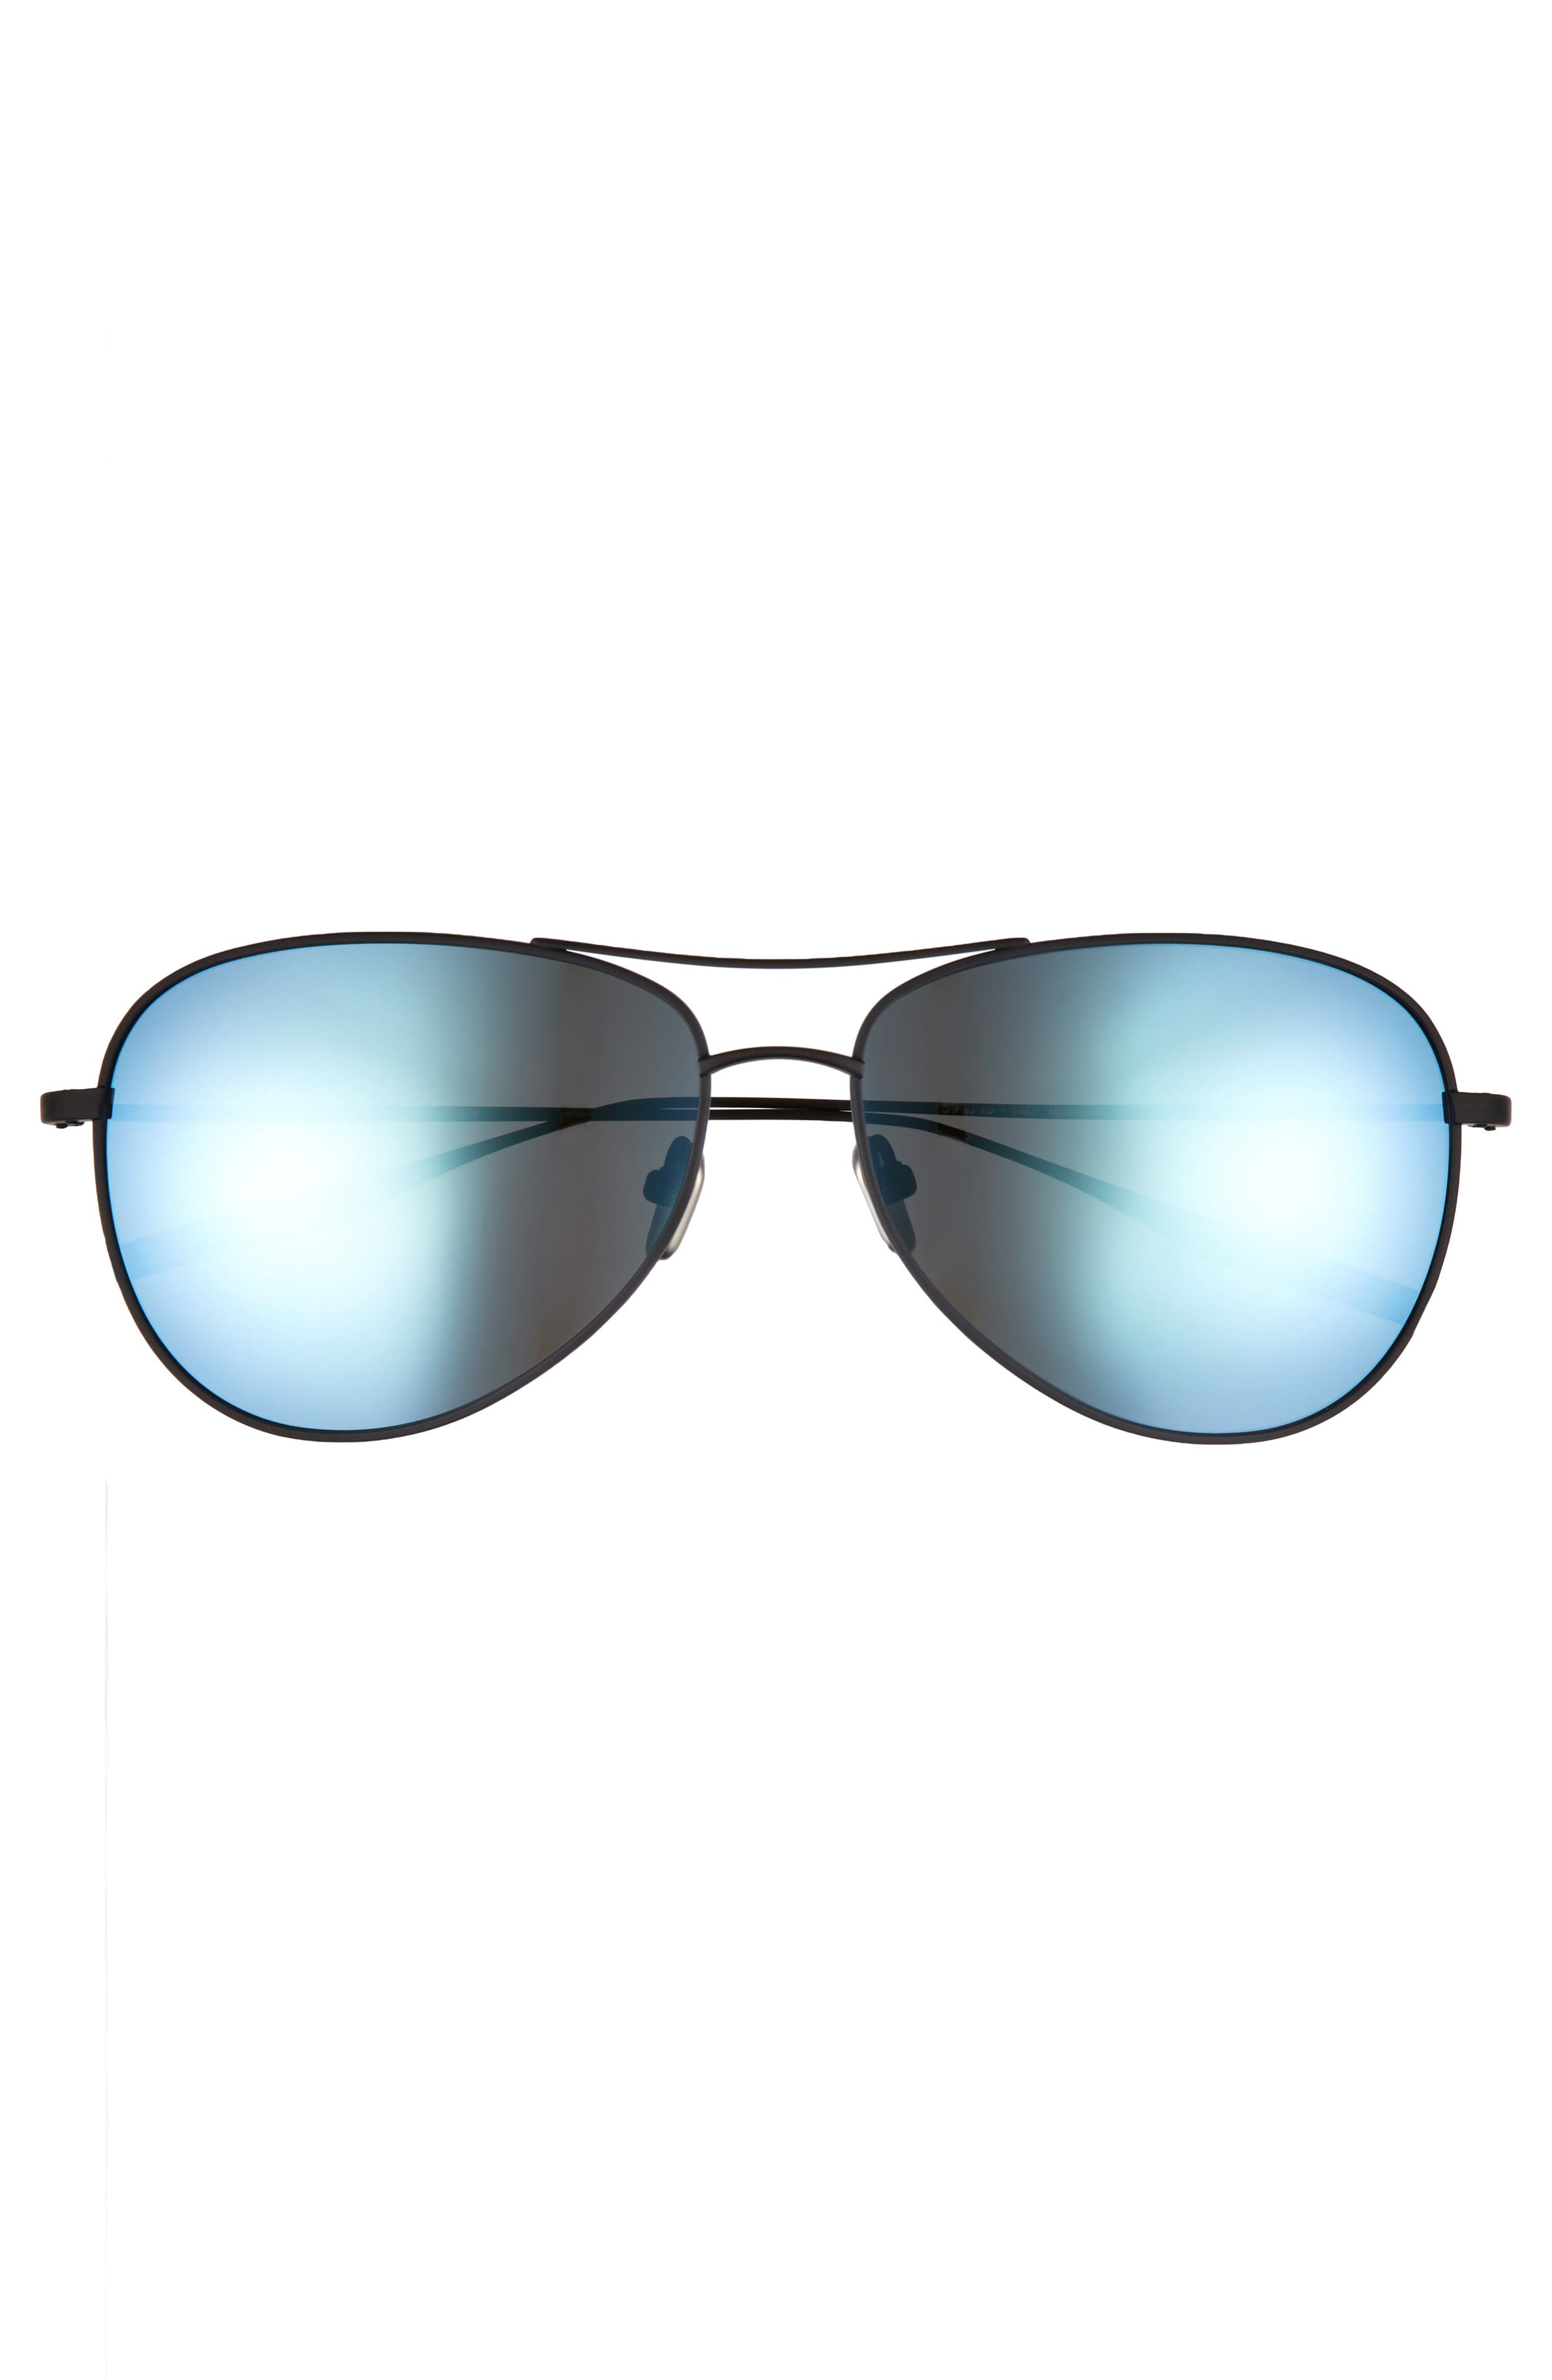 McKean 59mm Aviator Sunglasses,                             Alternate thumbnail 2, color,                             BLACK SAND / MIRROR BLUE